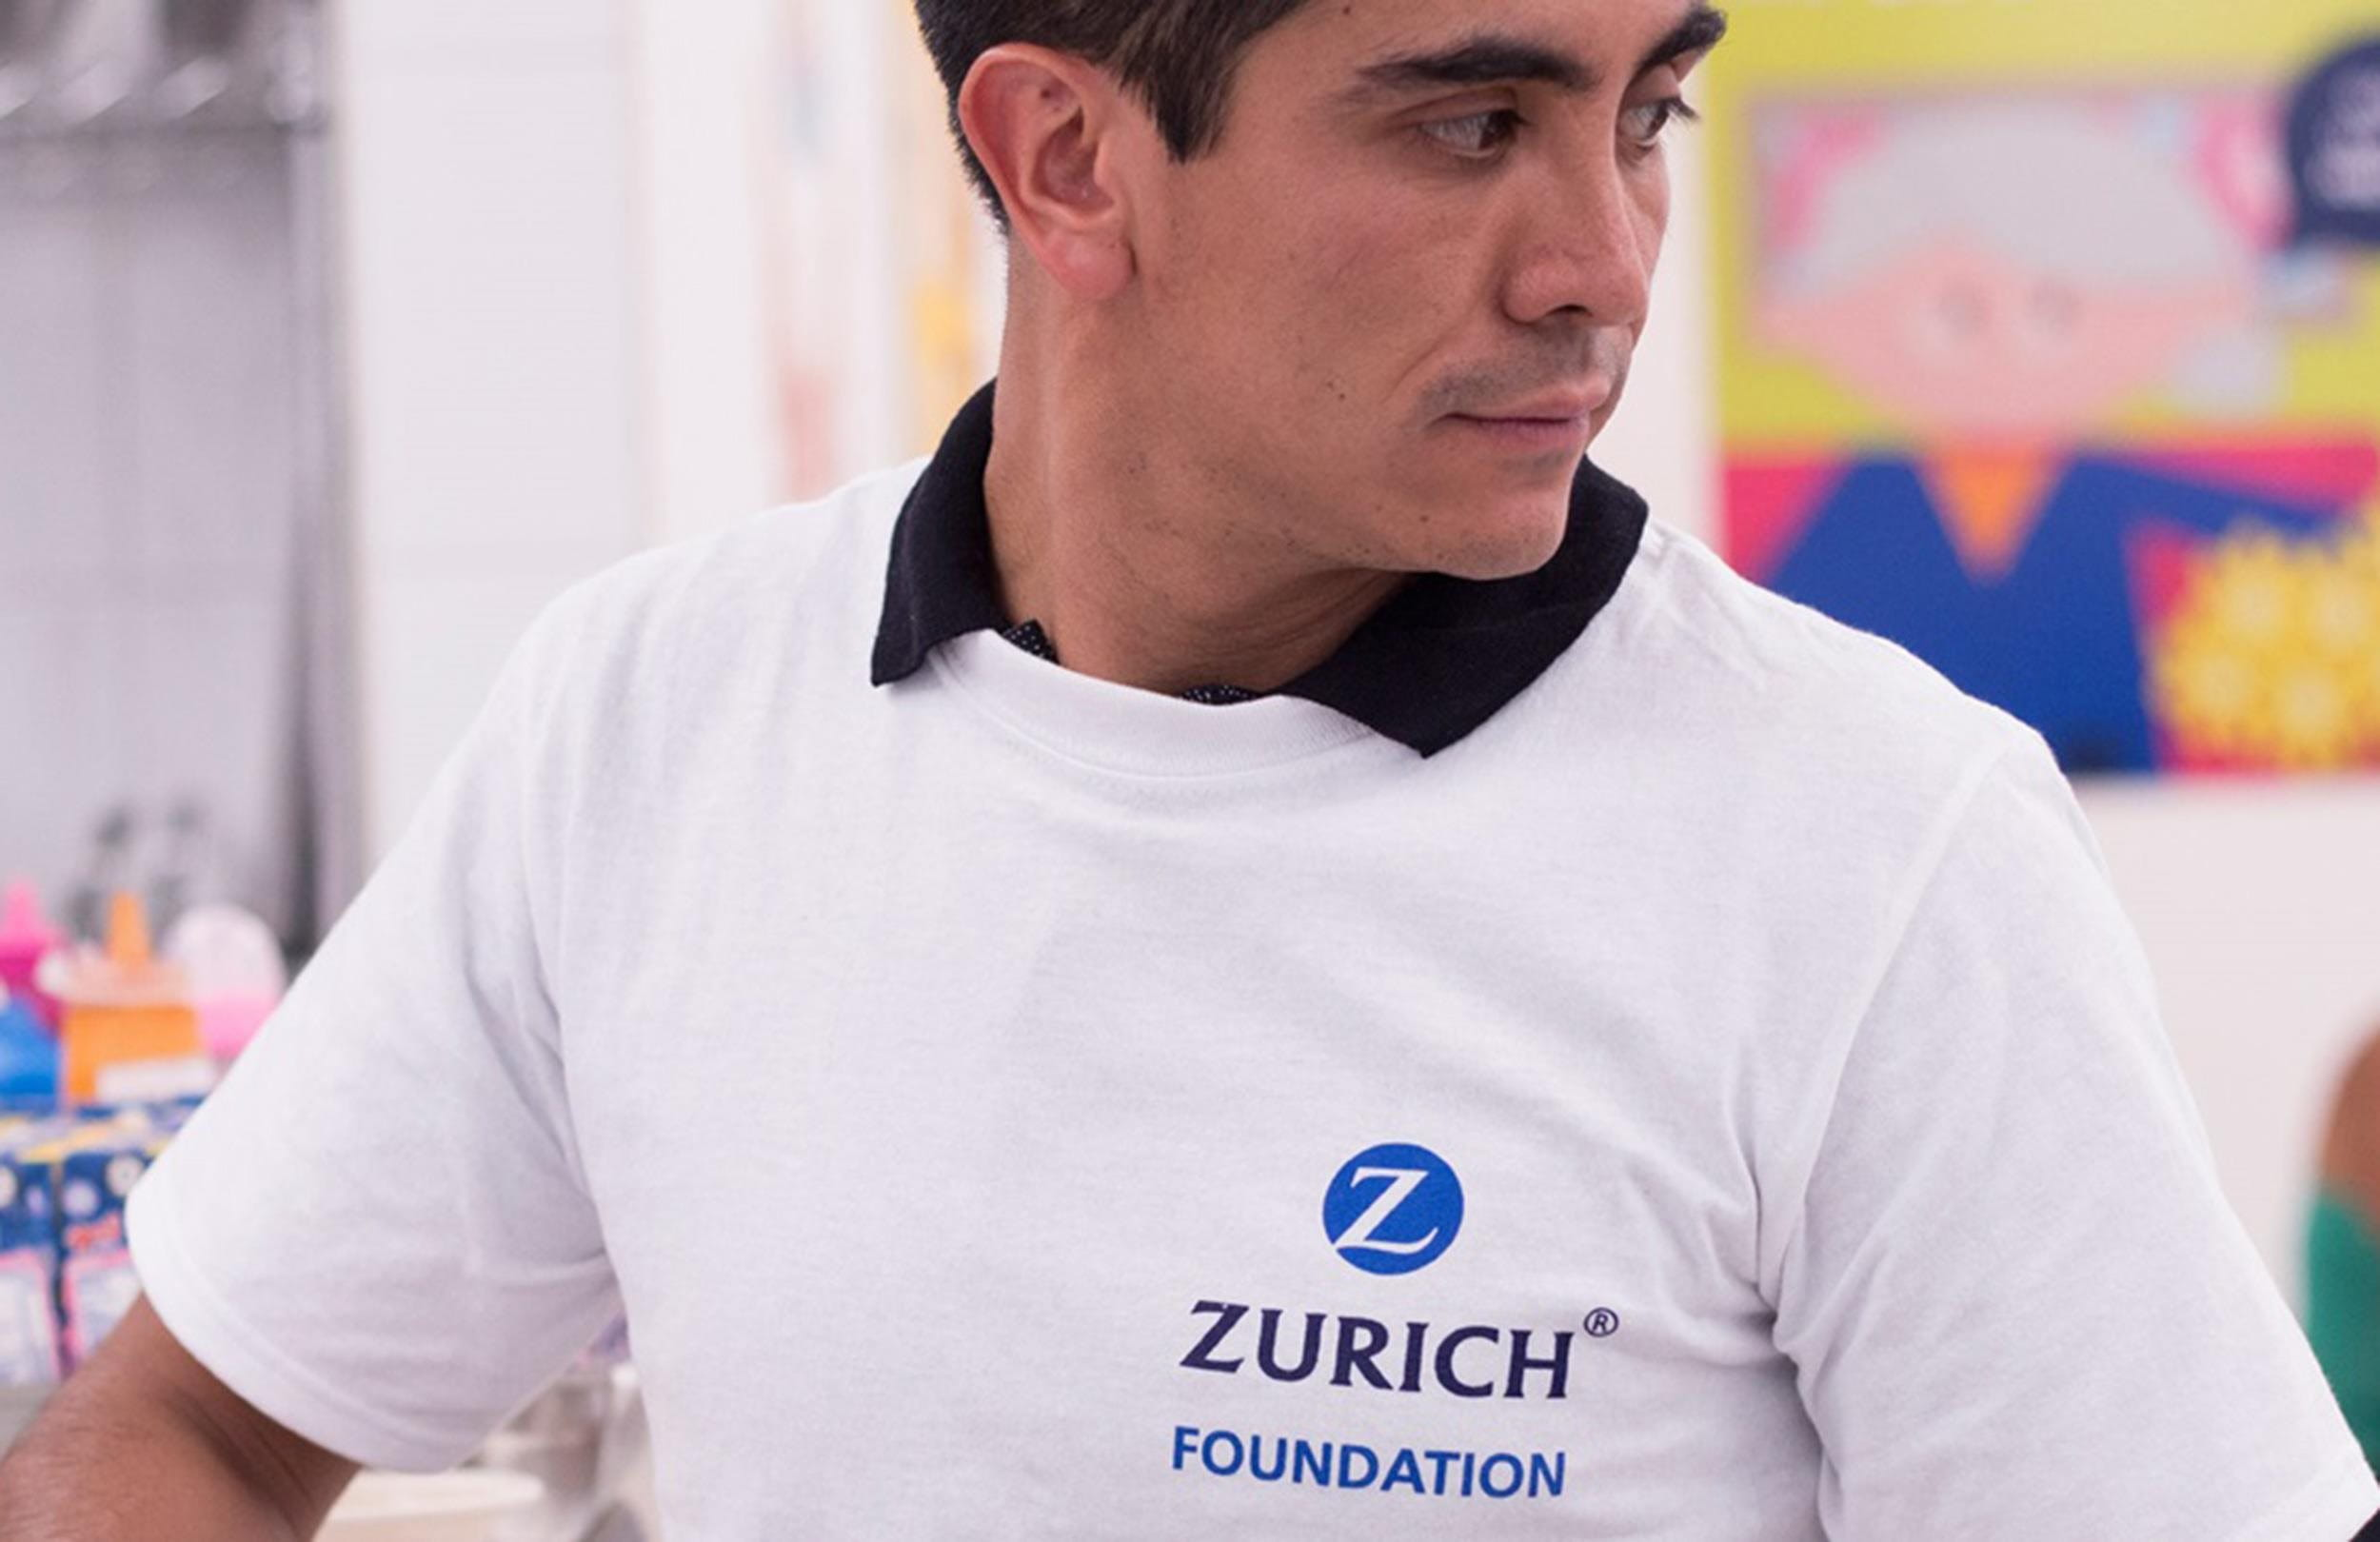 Zurich Foundation